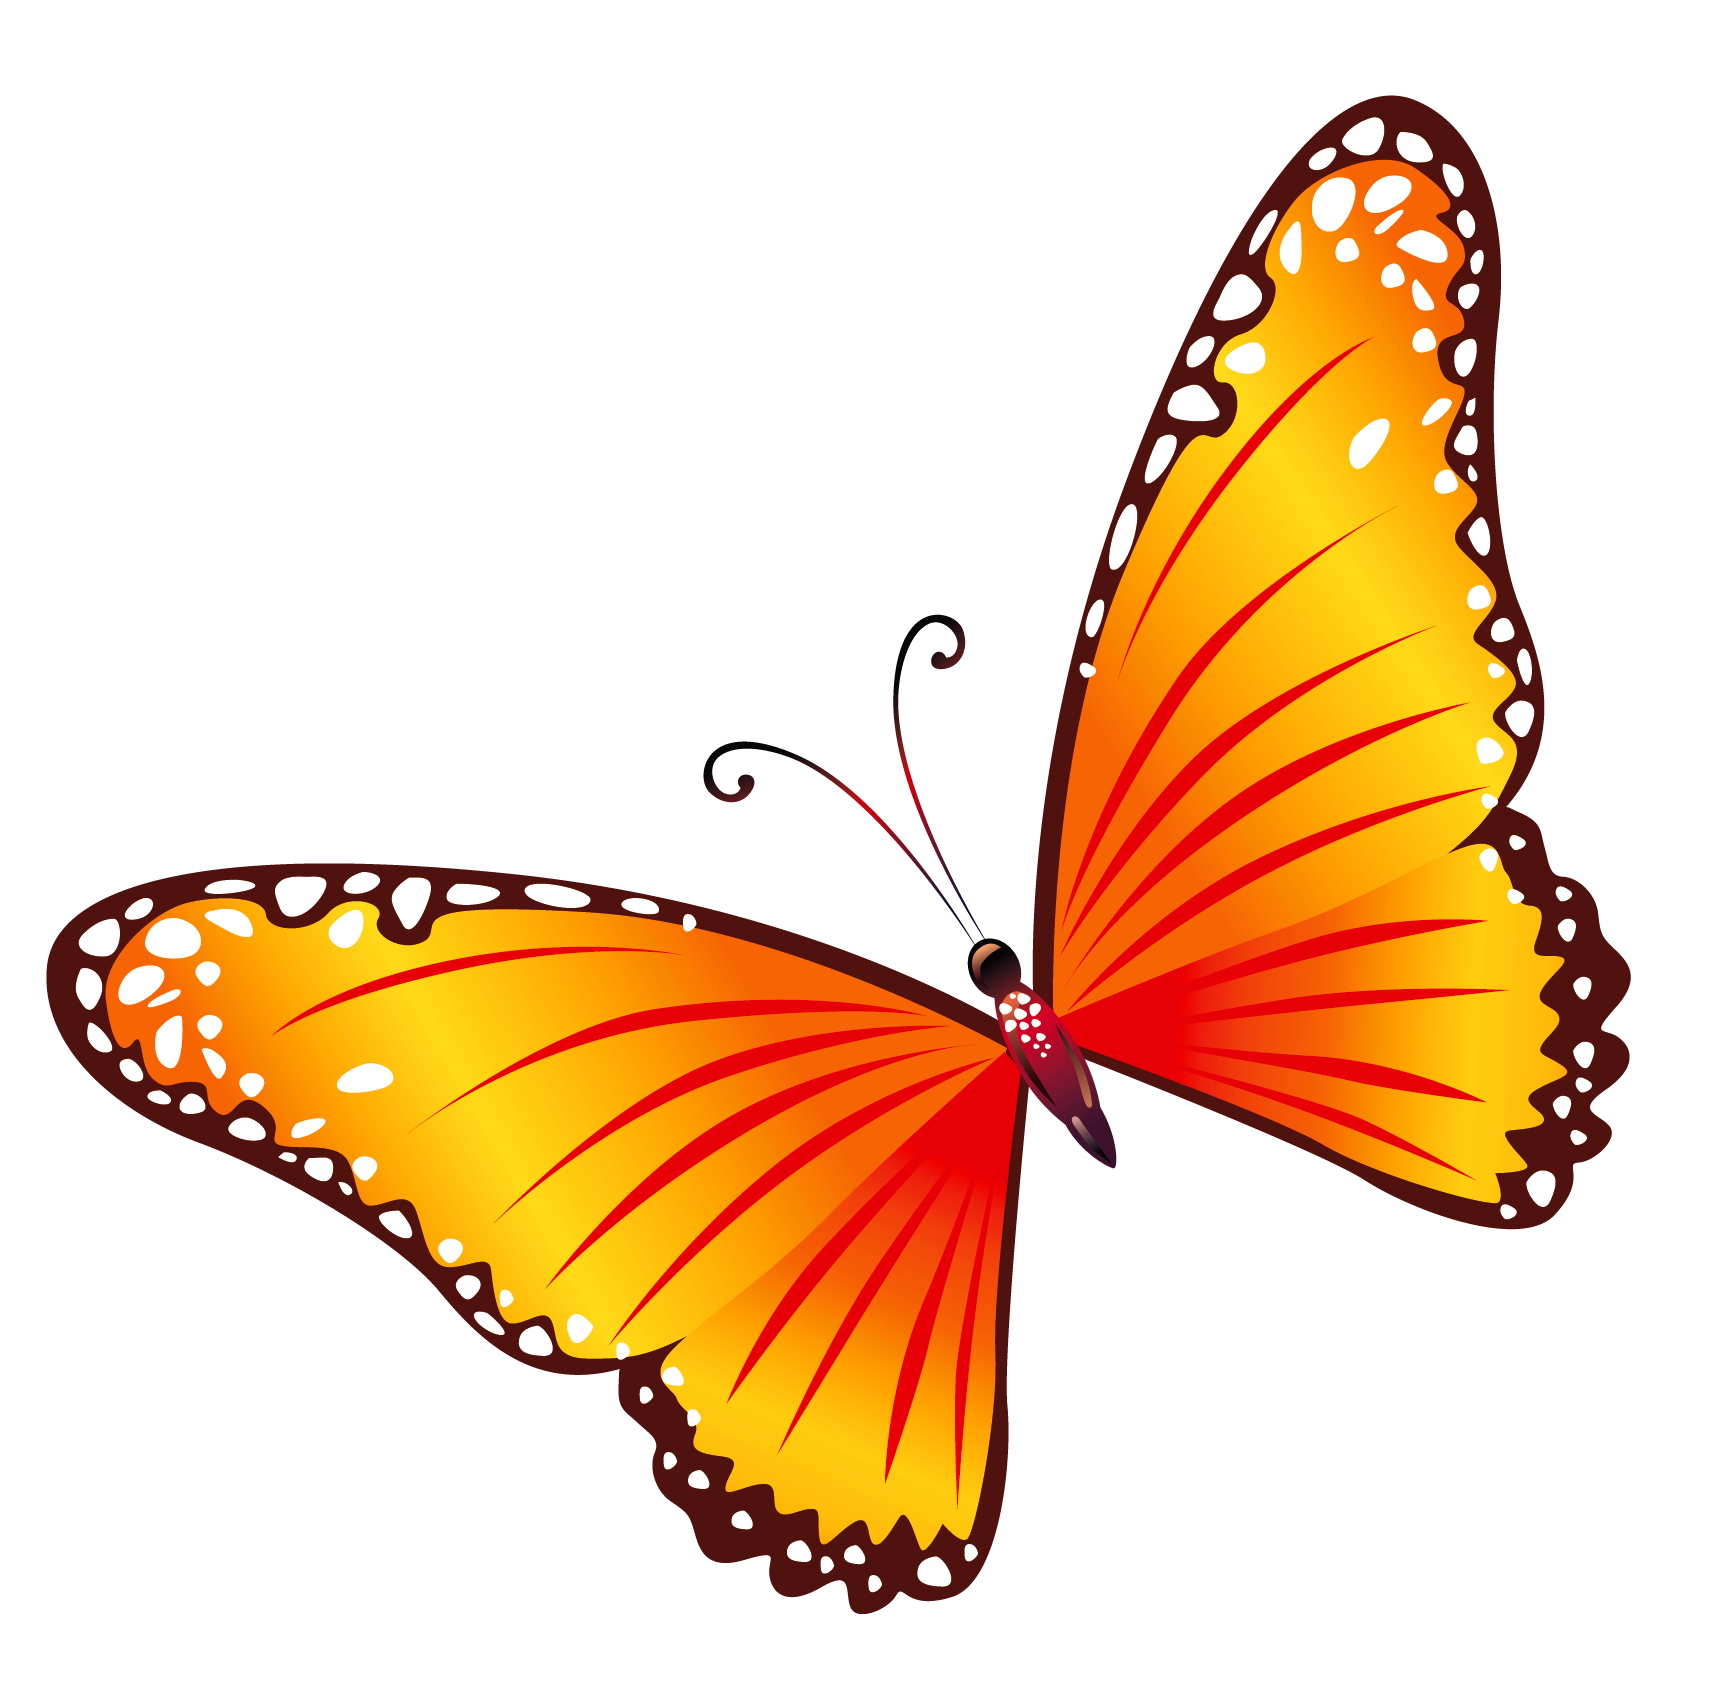 Free butterfly clipart png image free download Free butterfly clipart png - ClipartFest image free download